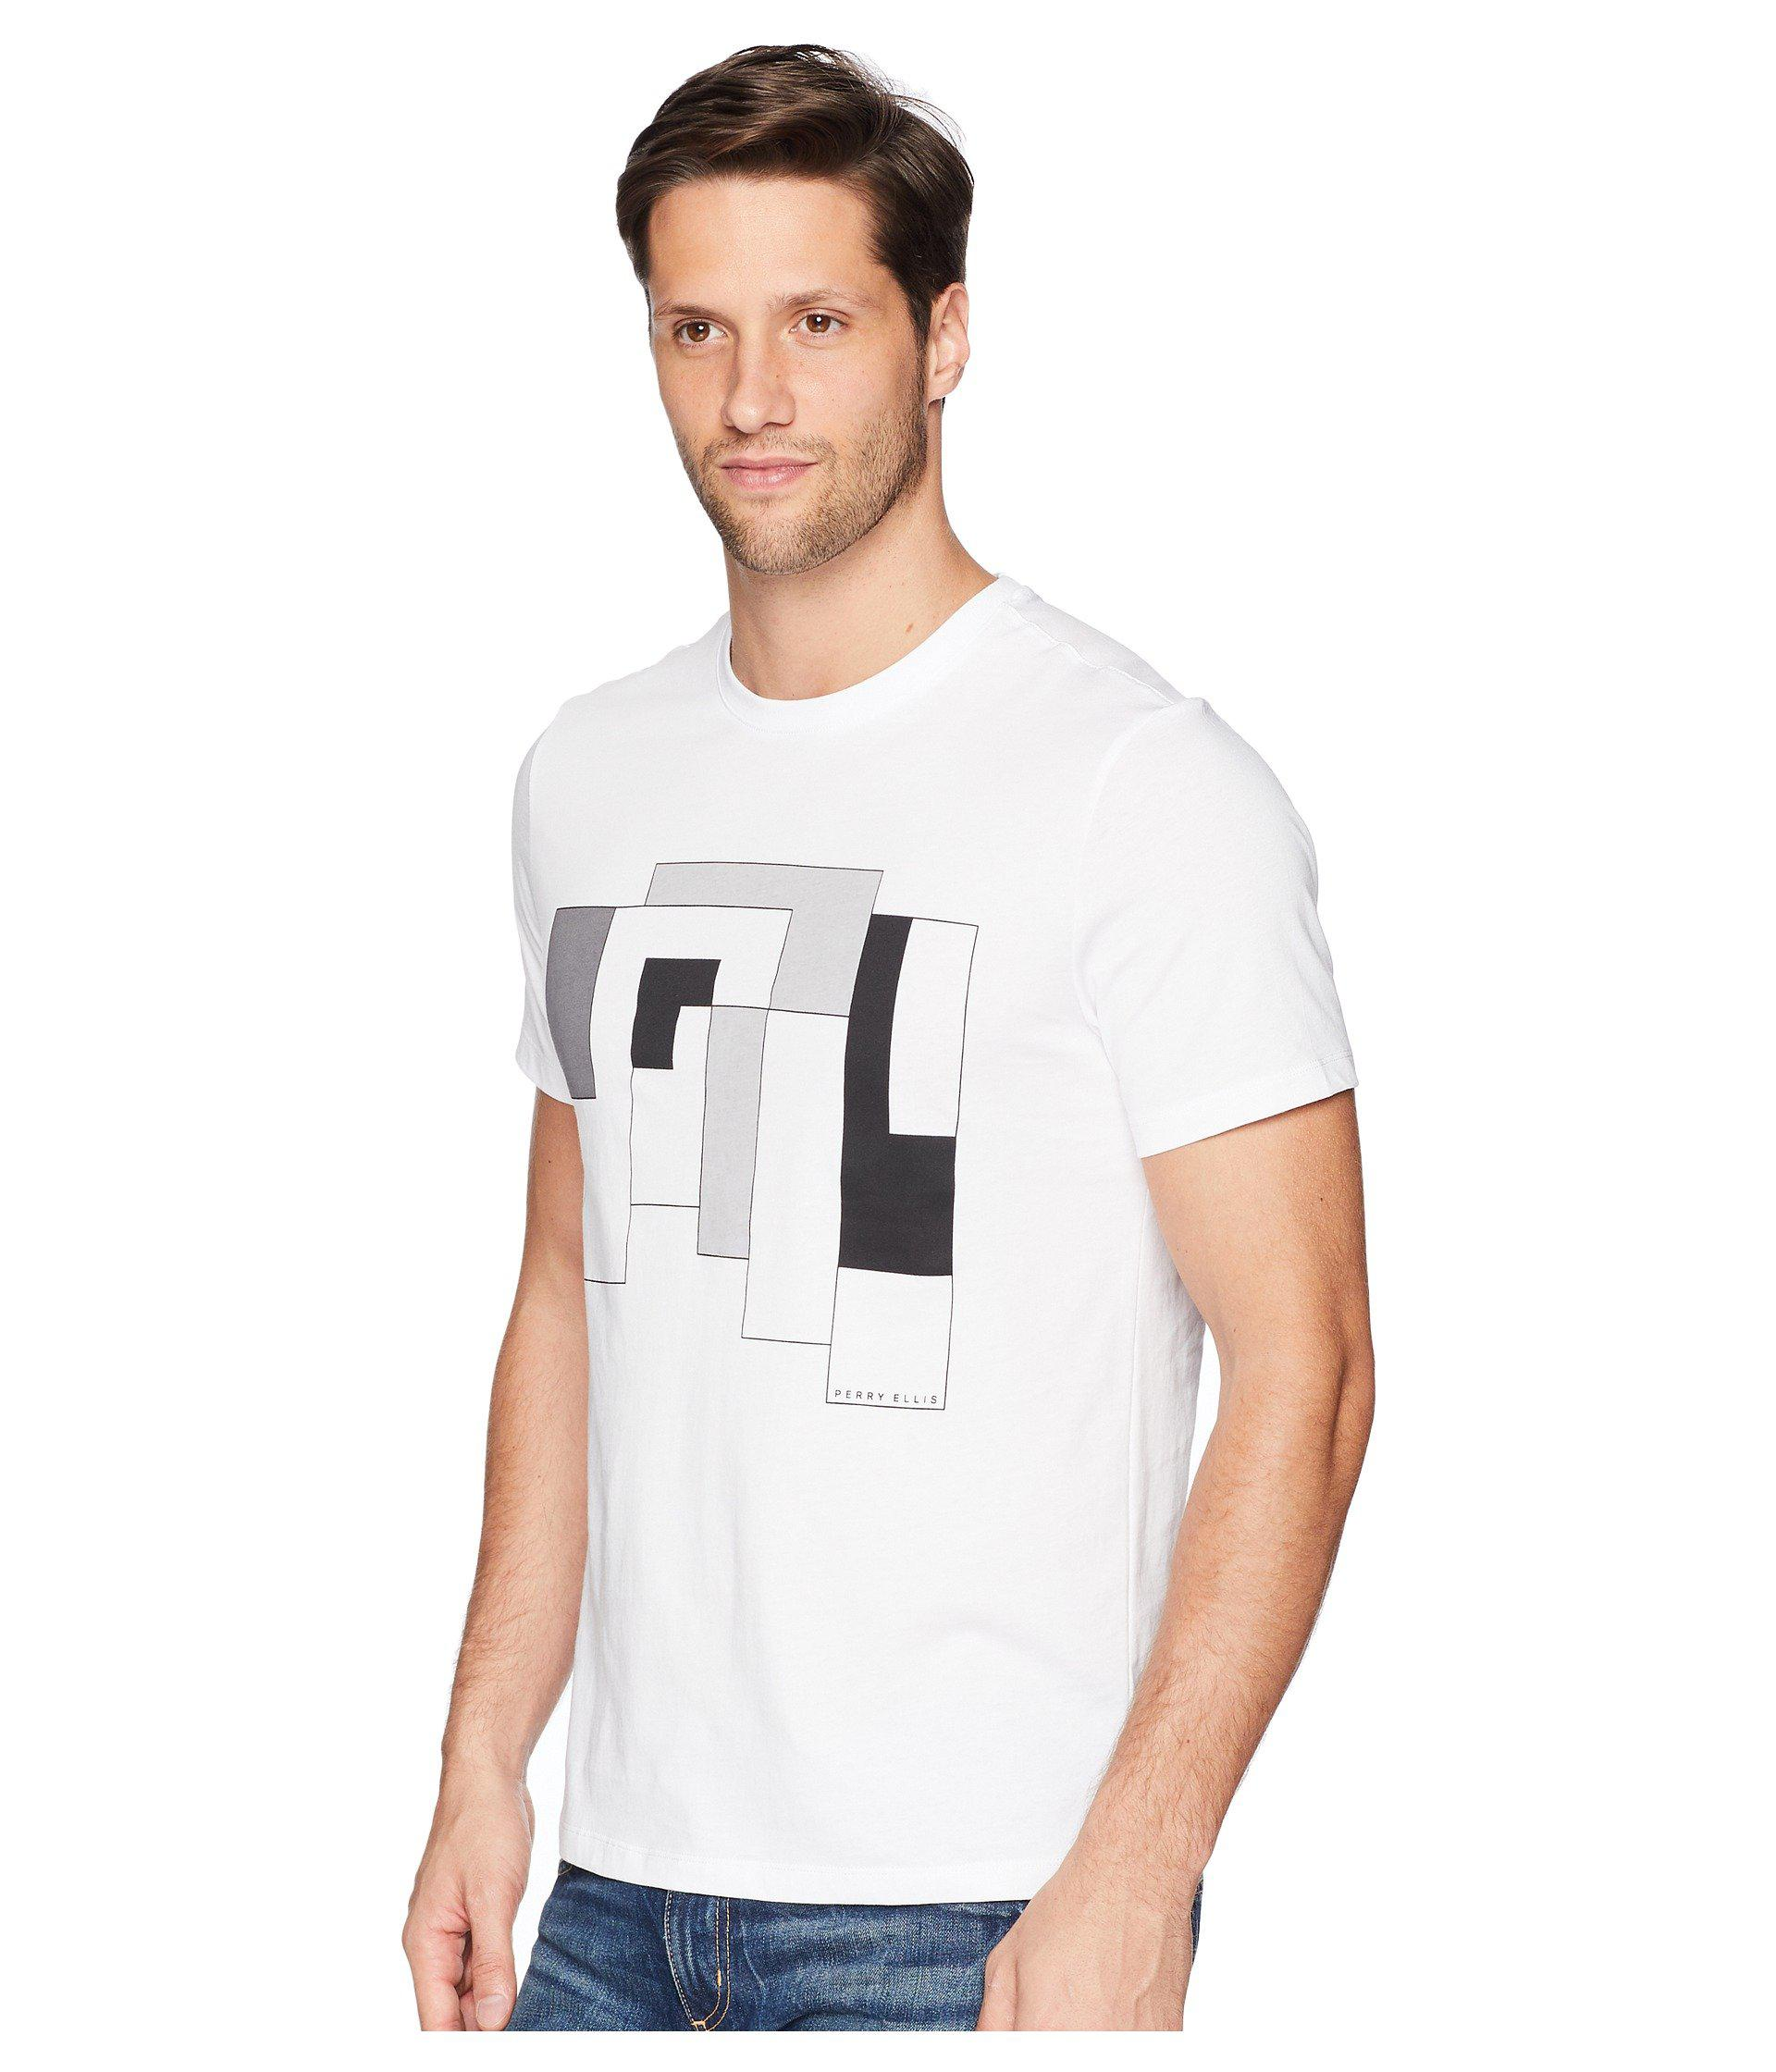 971f8e4e79 Lyst - Perry Ellis Abstract Print T-shirt in Black for Men - Save 48%